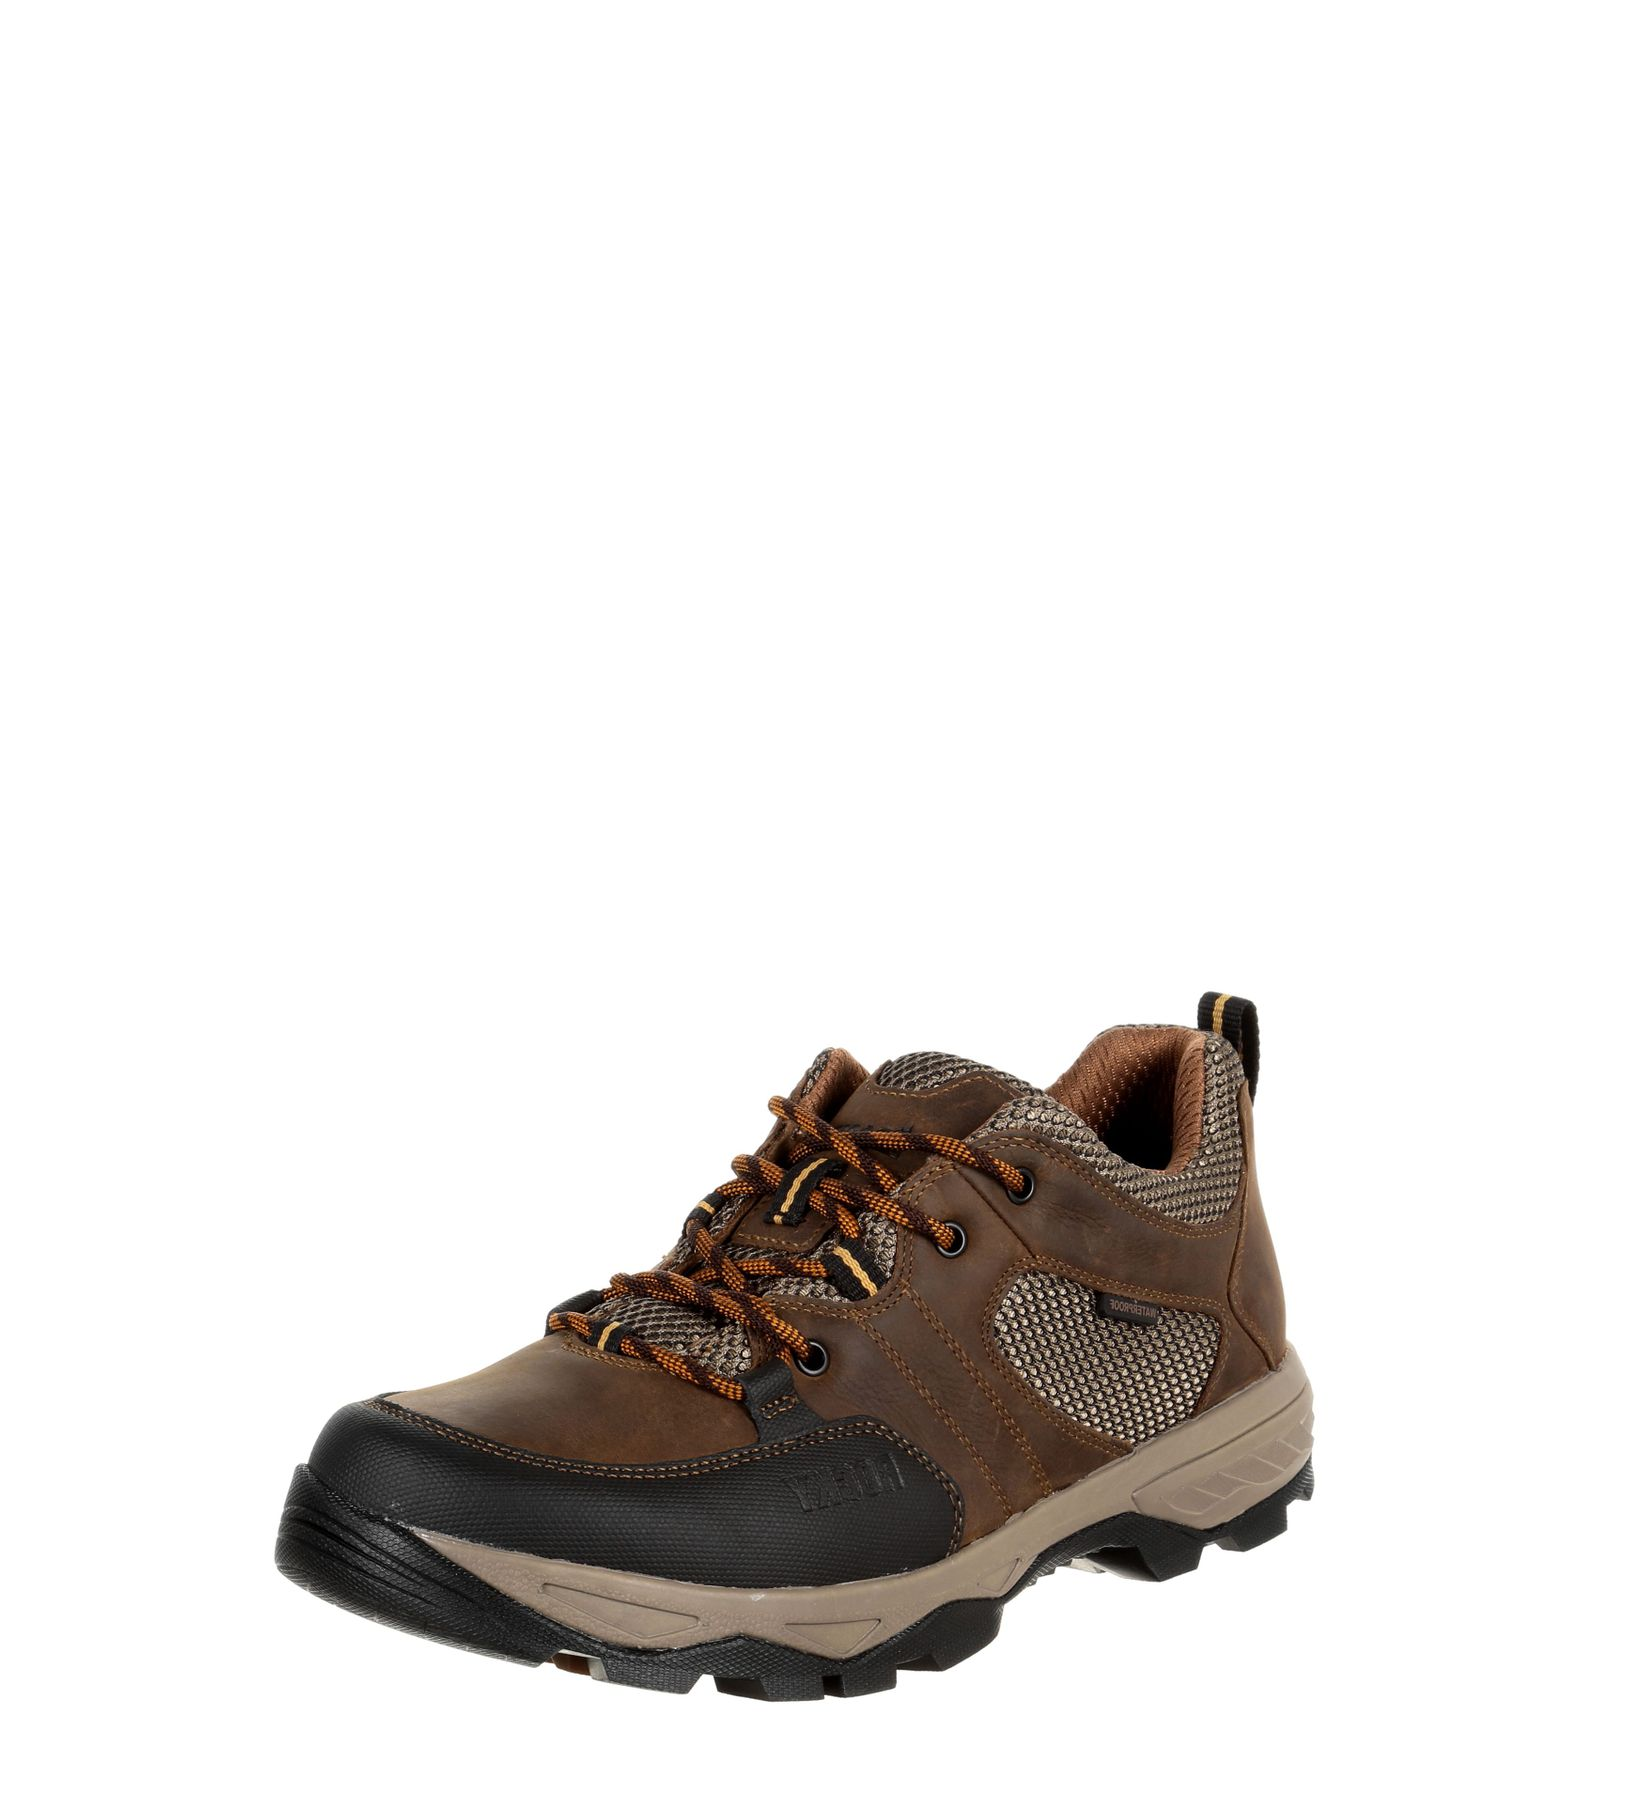 Rocky Boots RKS0296 ENDEAVOR POINT Brown wasserdichter Herren Outdoorschuh - braun